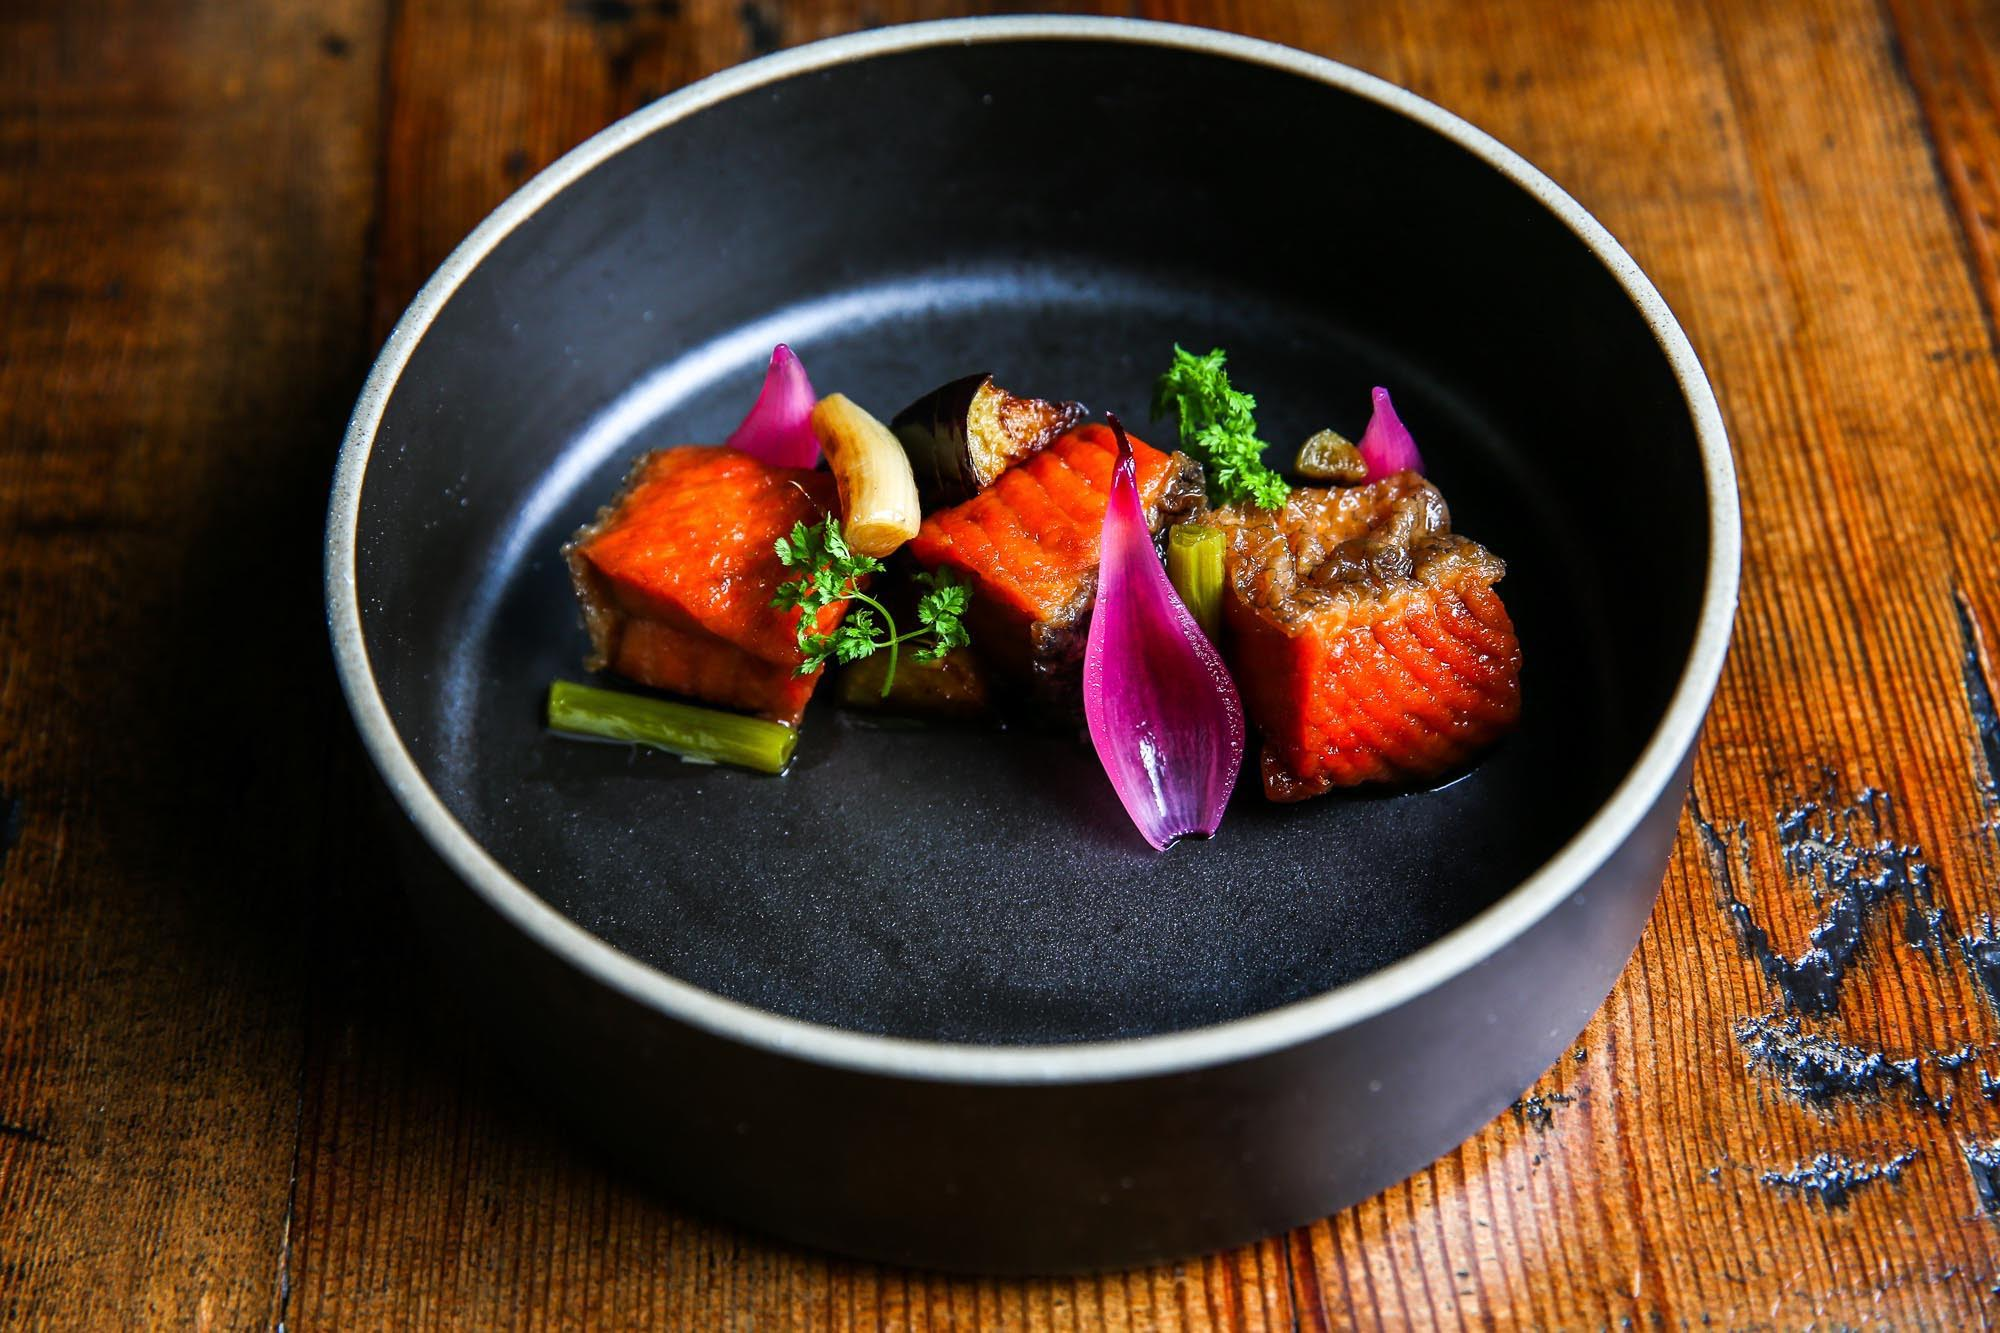 A plate of salmon chunks fried and marinated in a soy vinaigrette with eggplants and pickled red onion.